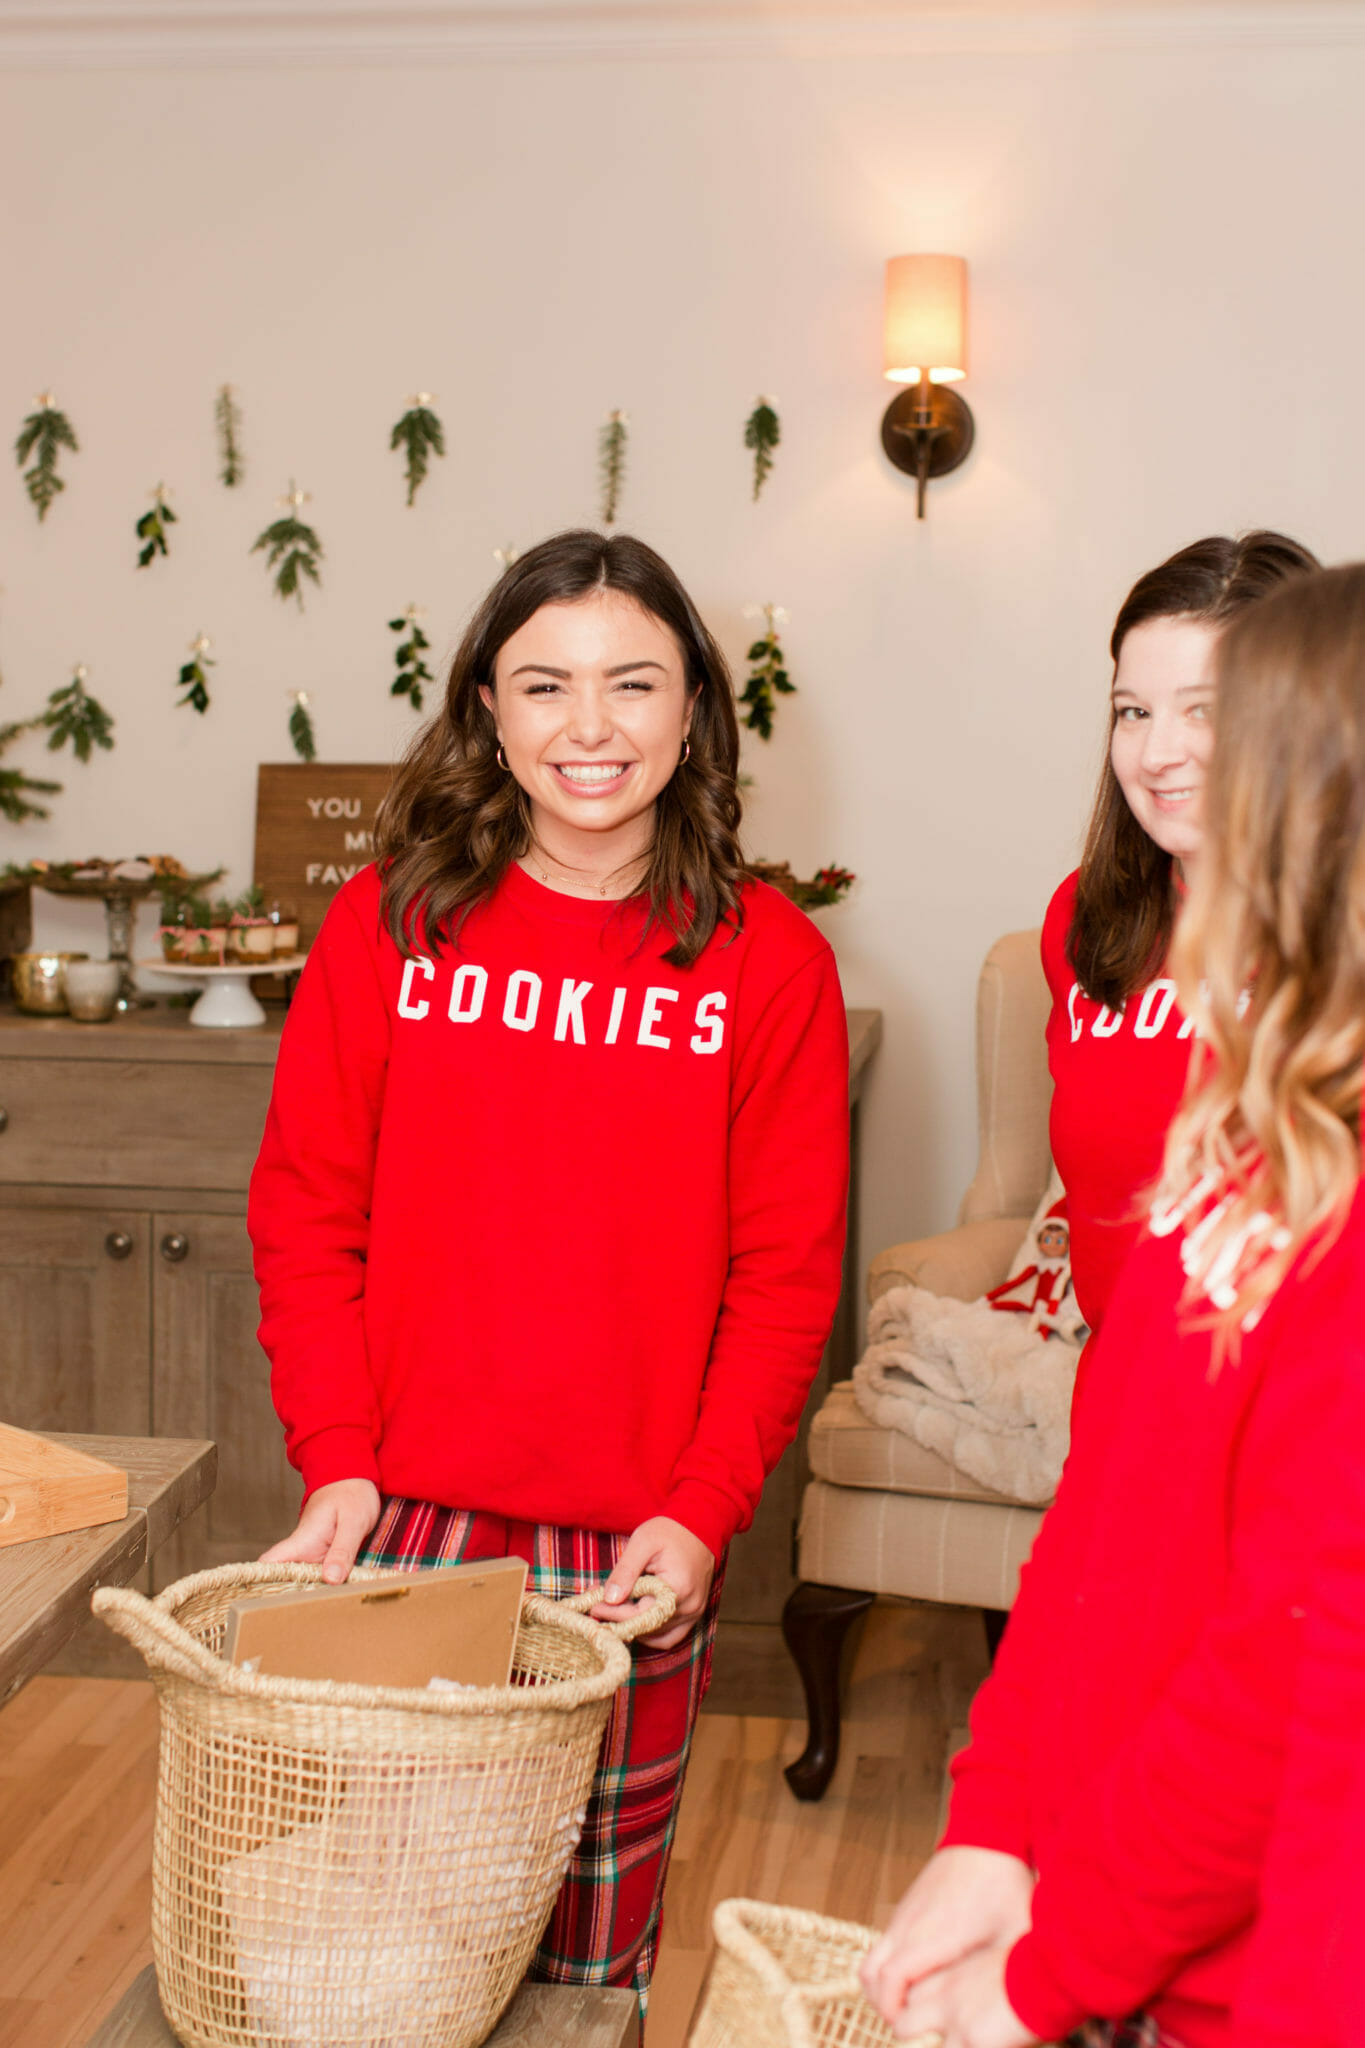 Cookie Squad Favorite Things Party | holiday party ideas | how to host a favorite things party || JennyCookies.com #holidayparty #favoritethings #partyideas #jennycookies